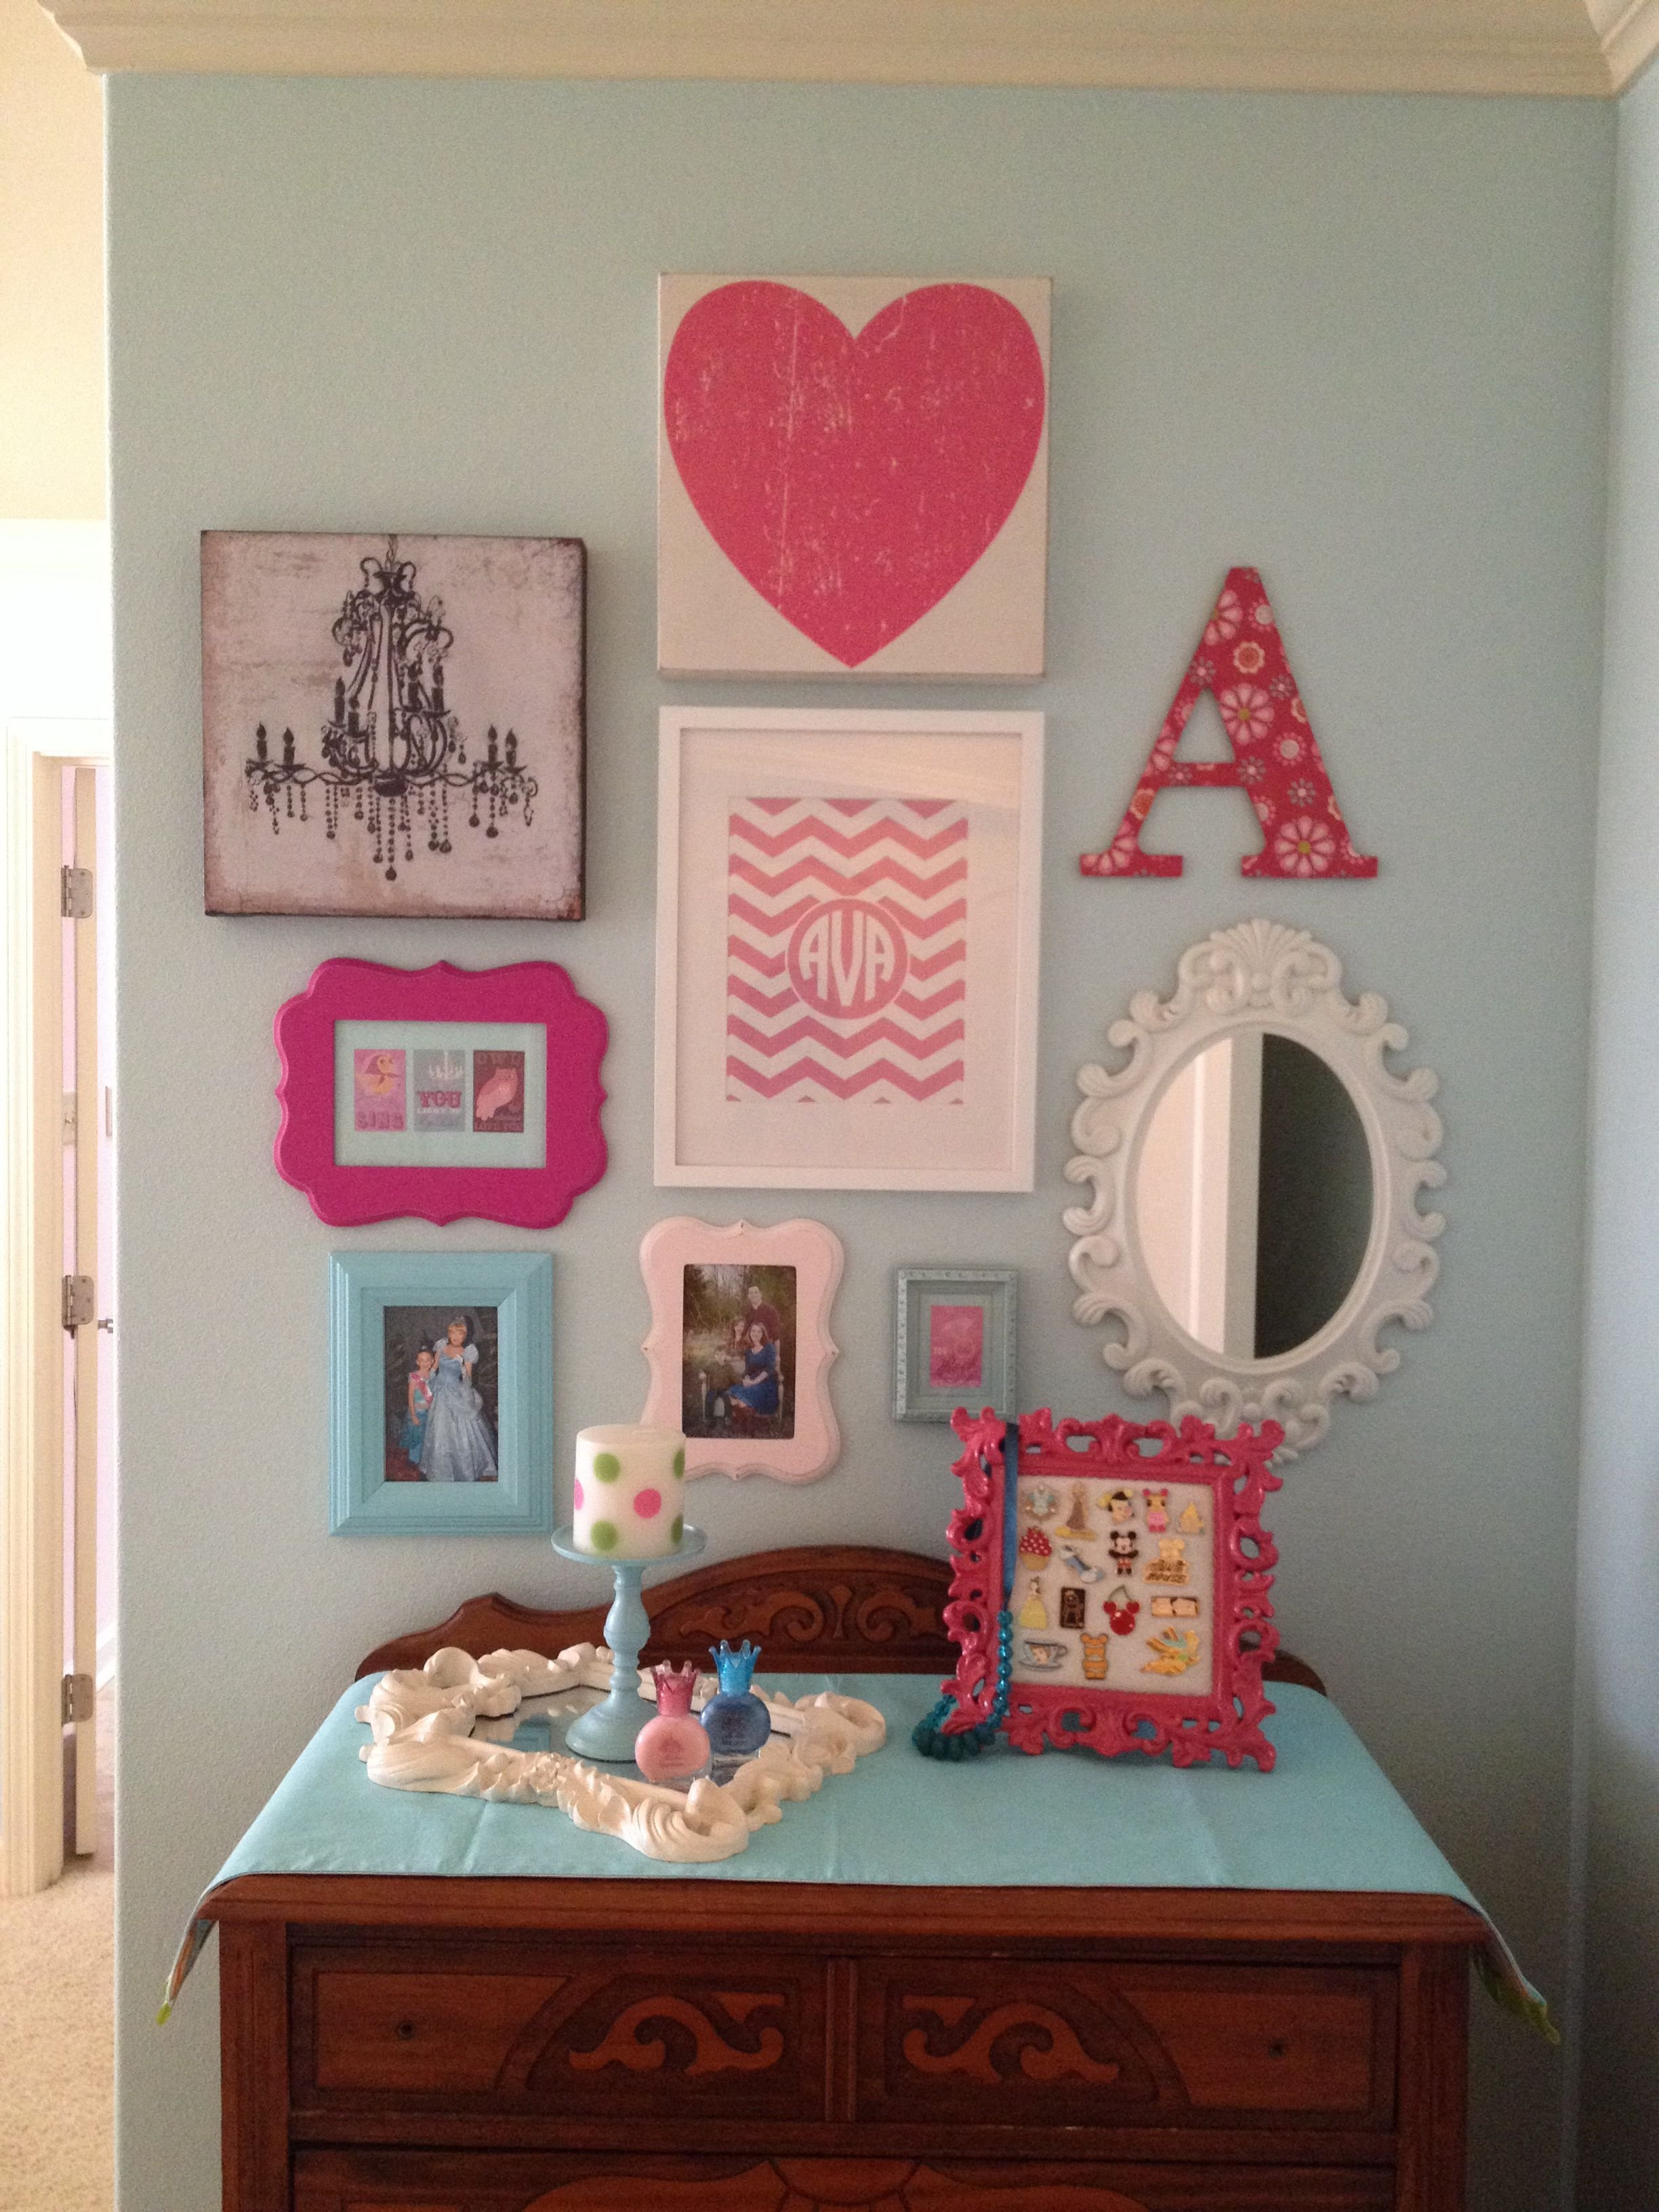 Best Girls Room Gallery Wall Gallery Wall Ideas In 2019 With Pictures